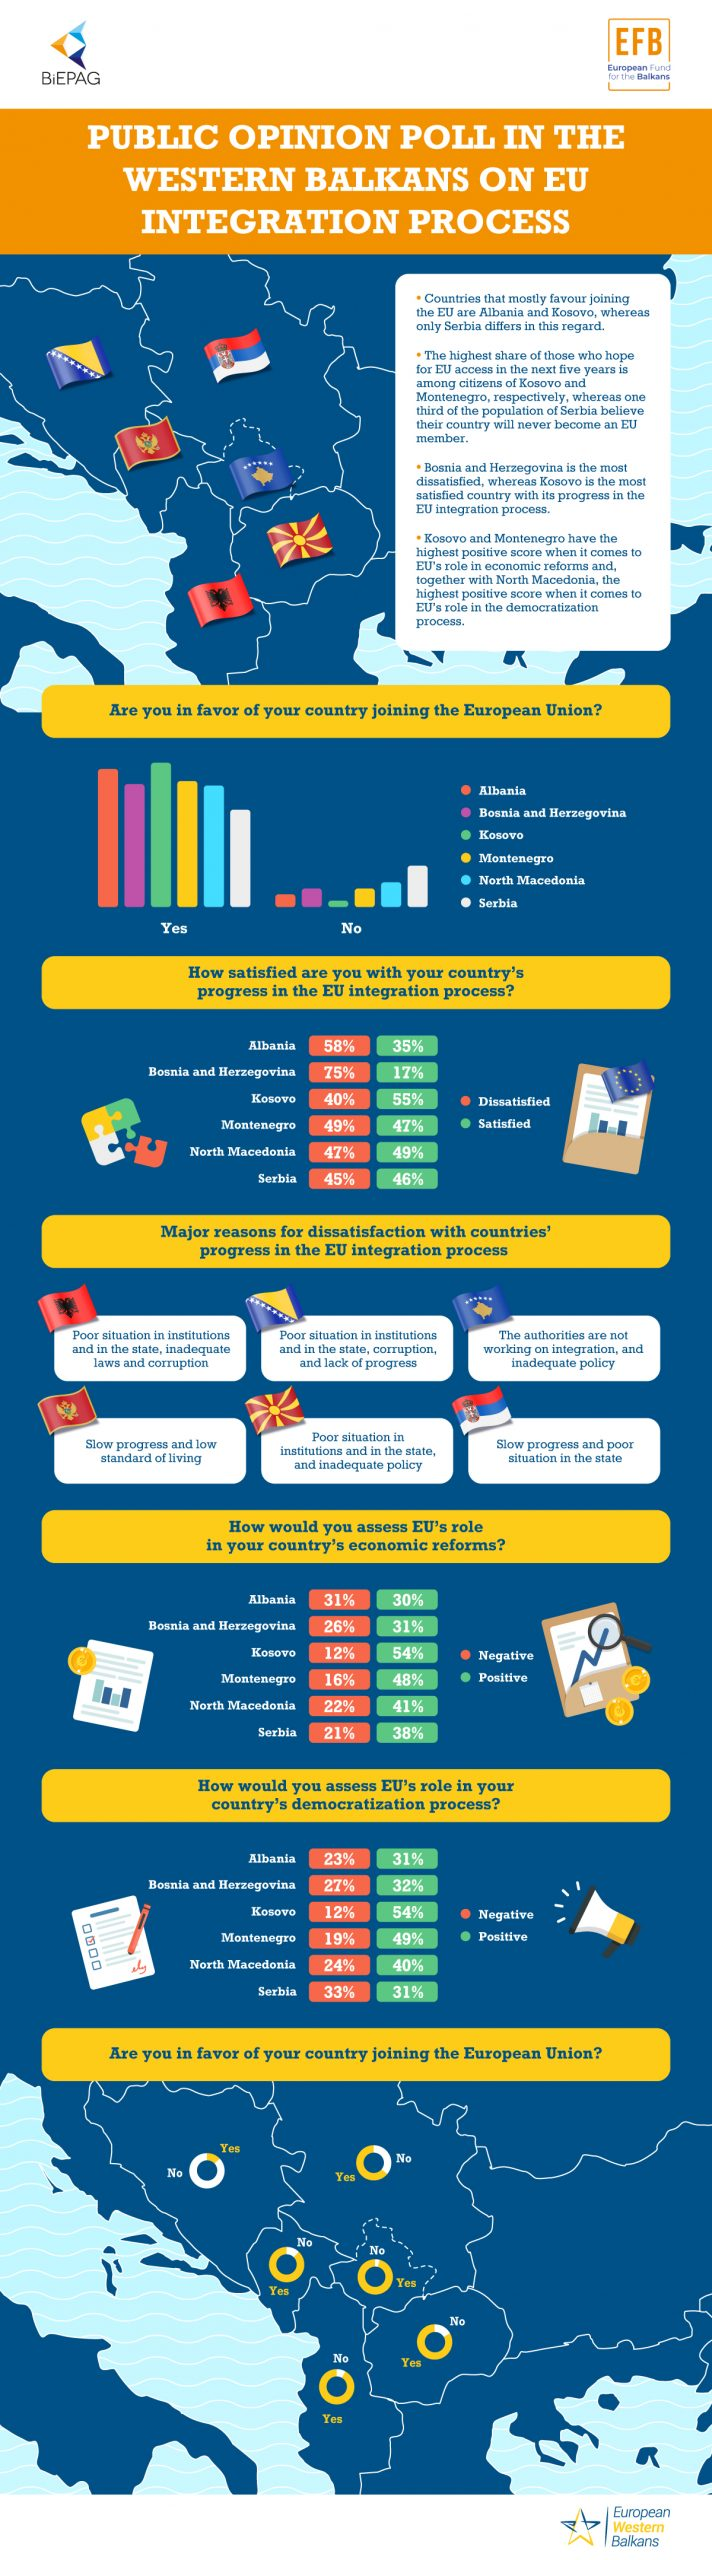 Public Opinion Poll in the Western Balkans on EU Integration Process